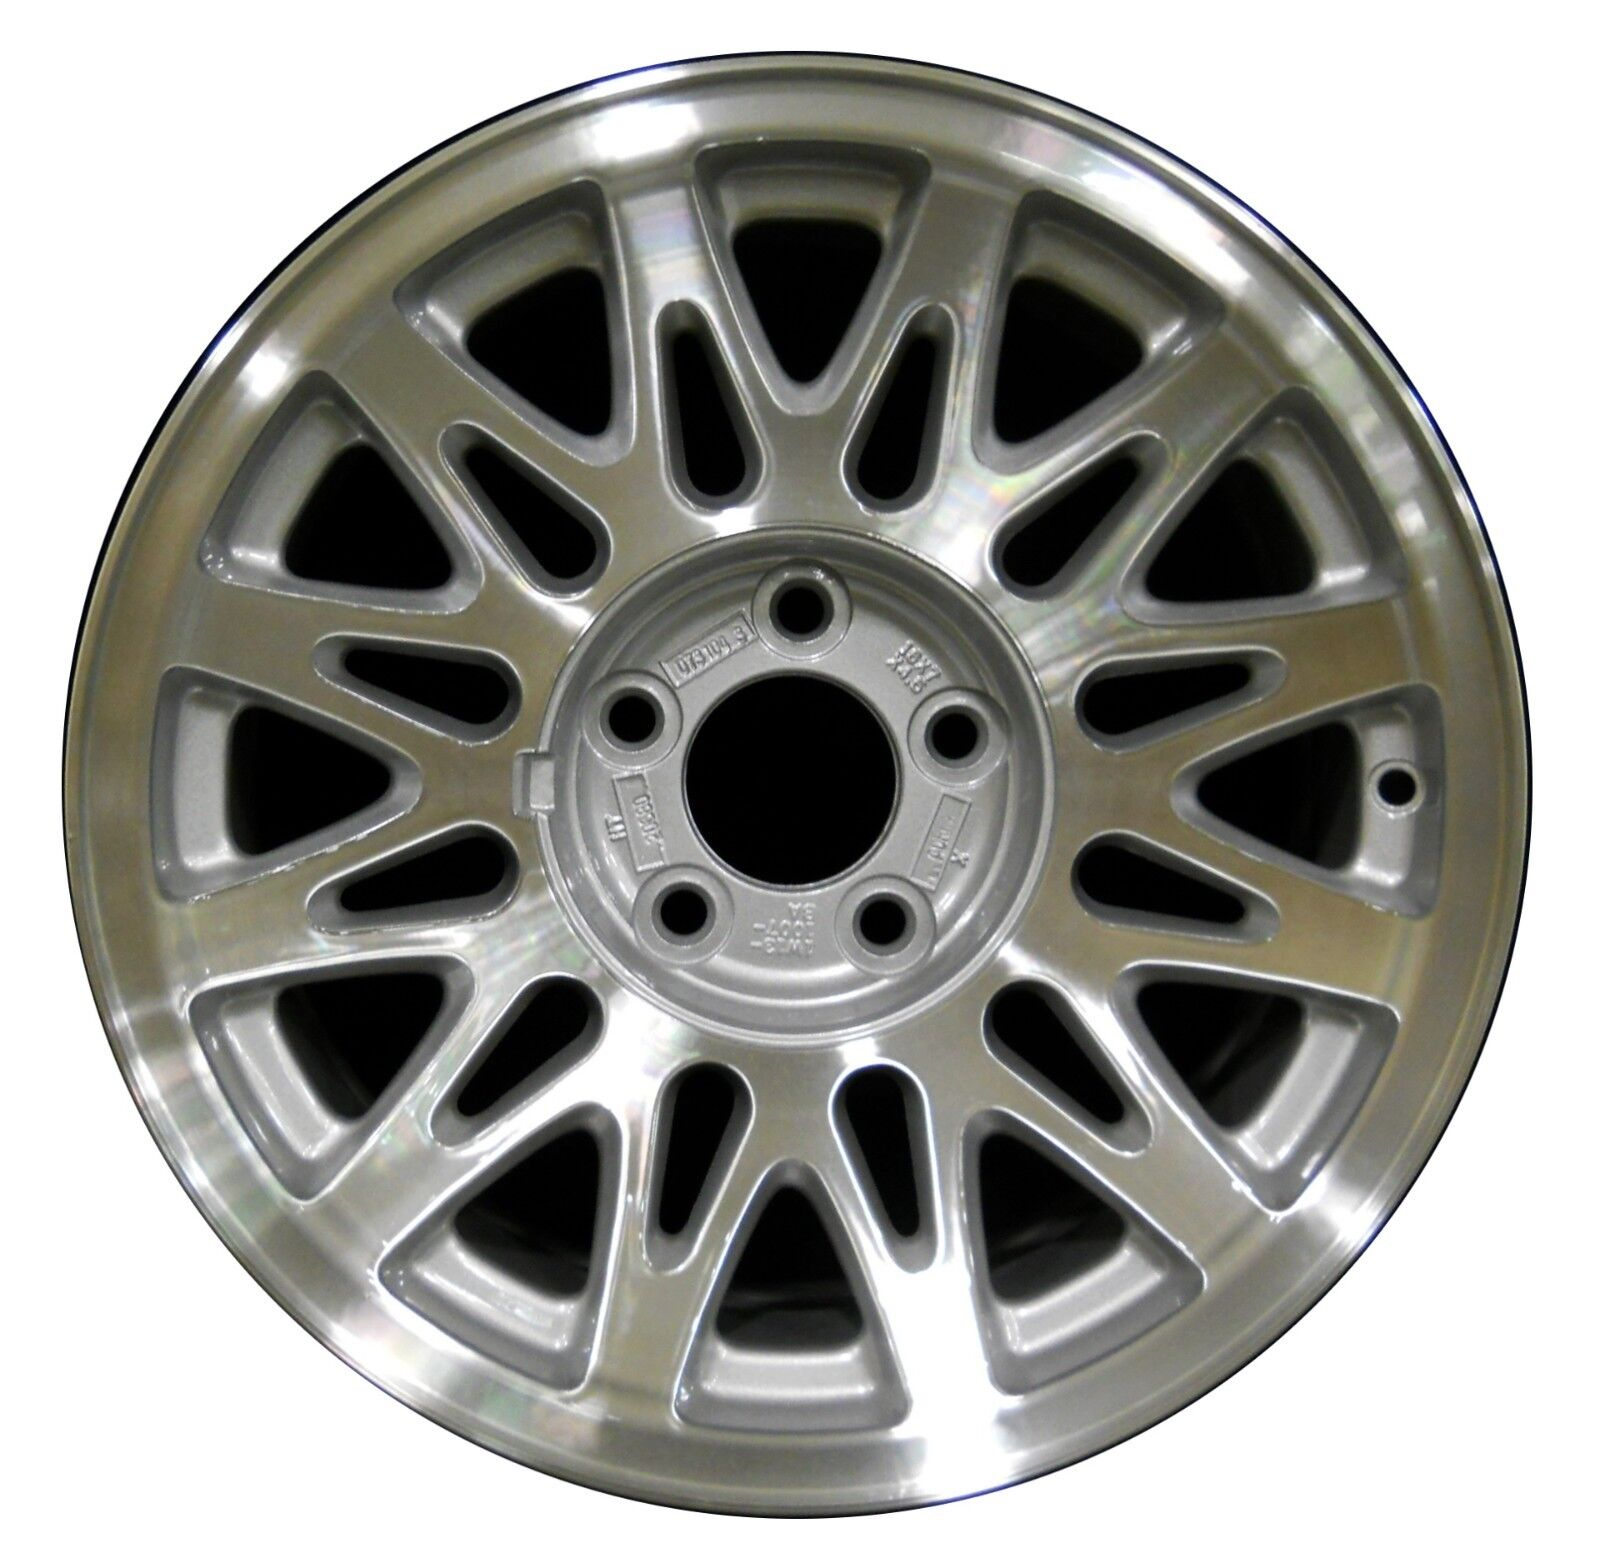 Used 2000 Lincoln Town Car Wheels For Sale Rim 16 1998 2002 Factory Oem Wheel 3364 Silver